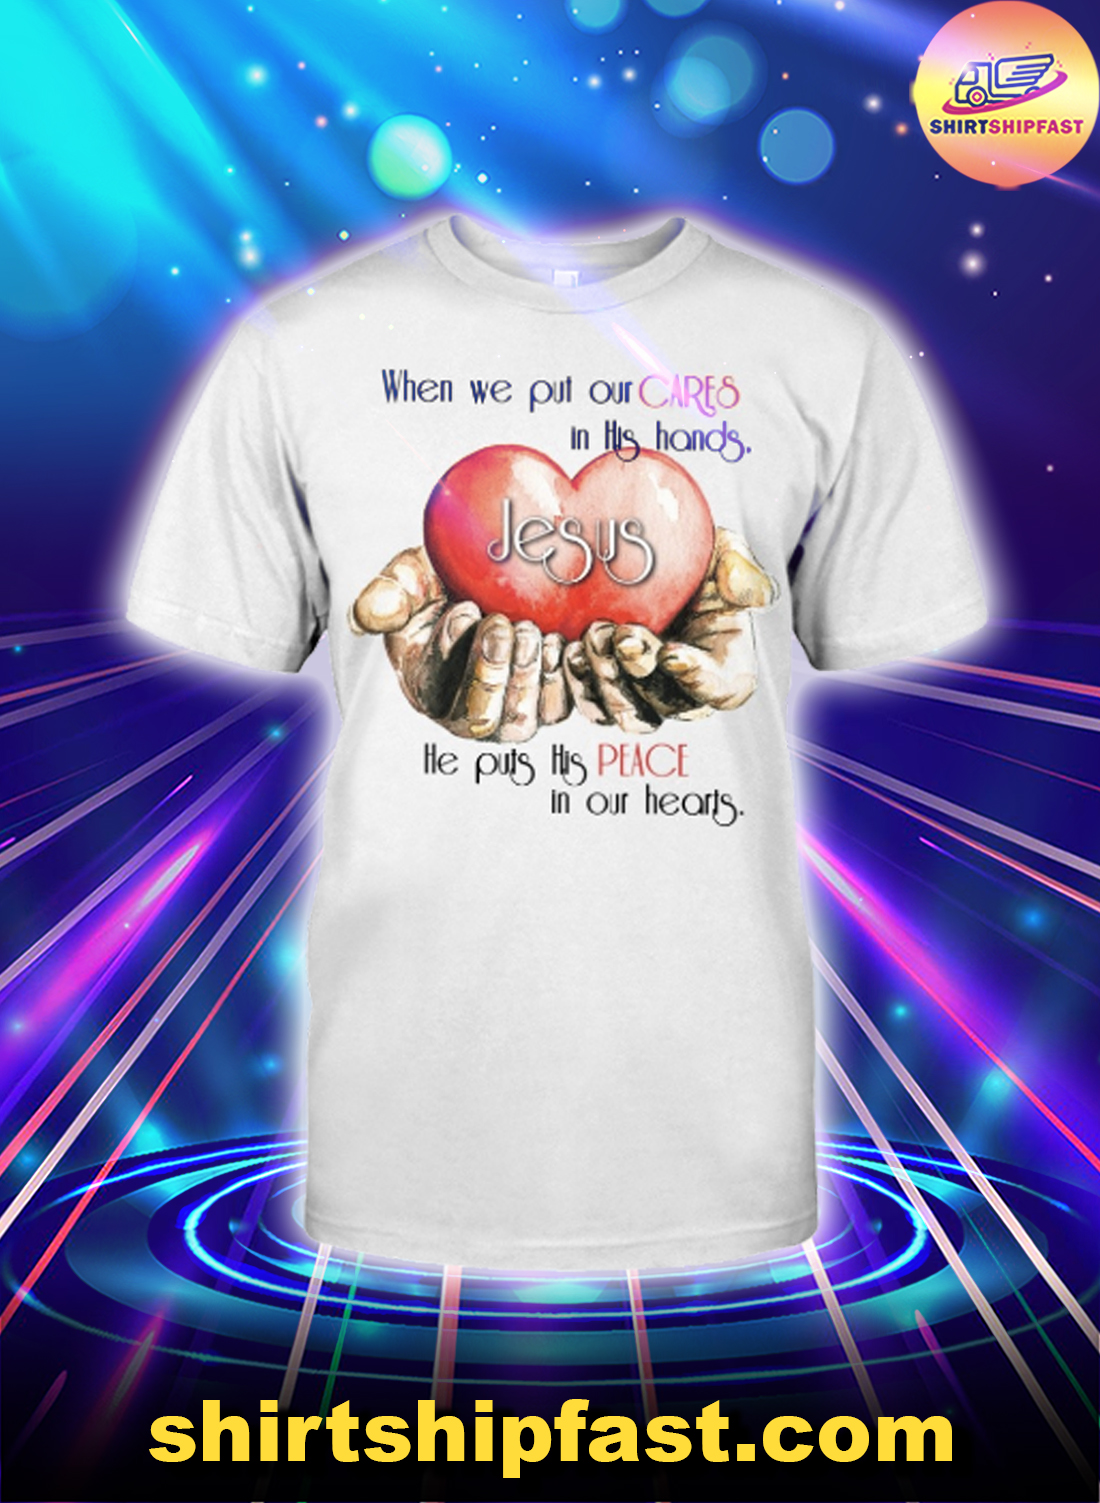 Jesus When we put our cares in this hands he puts his peace in our hearts shirt